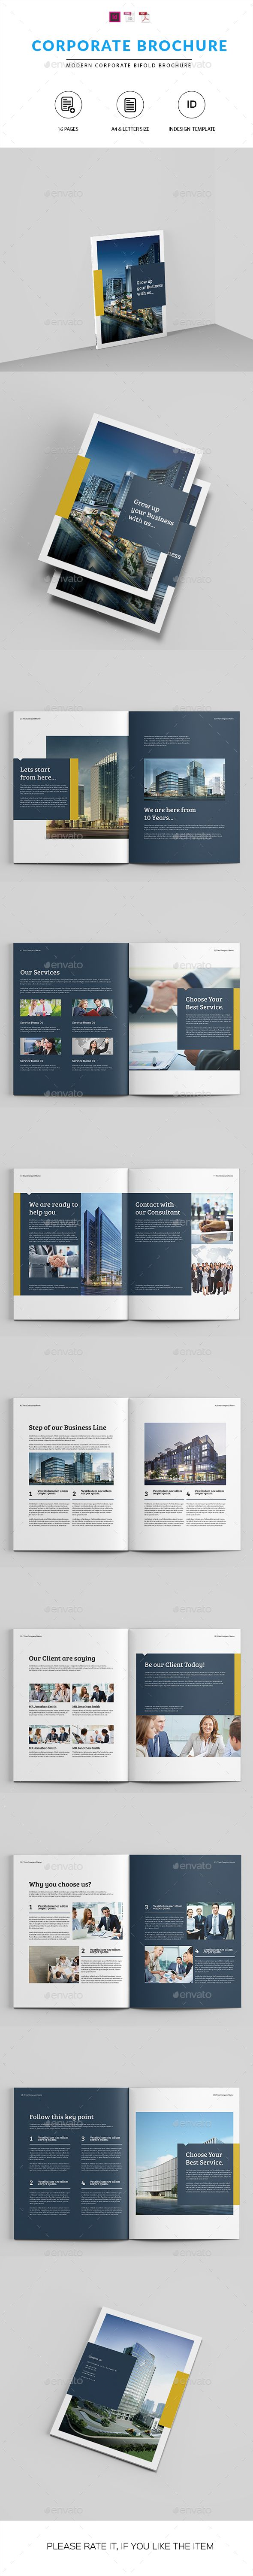 Company Brochure Template InDesign INDD. Download here: http://graphicriver.net/item/company-brochure-indesign-template/16071619?ref=ksioks